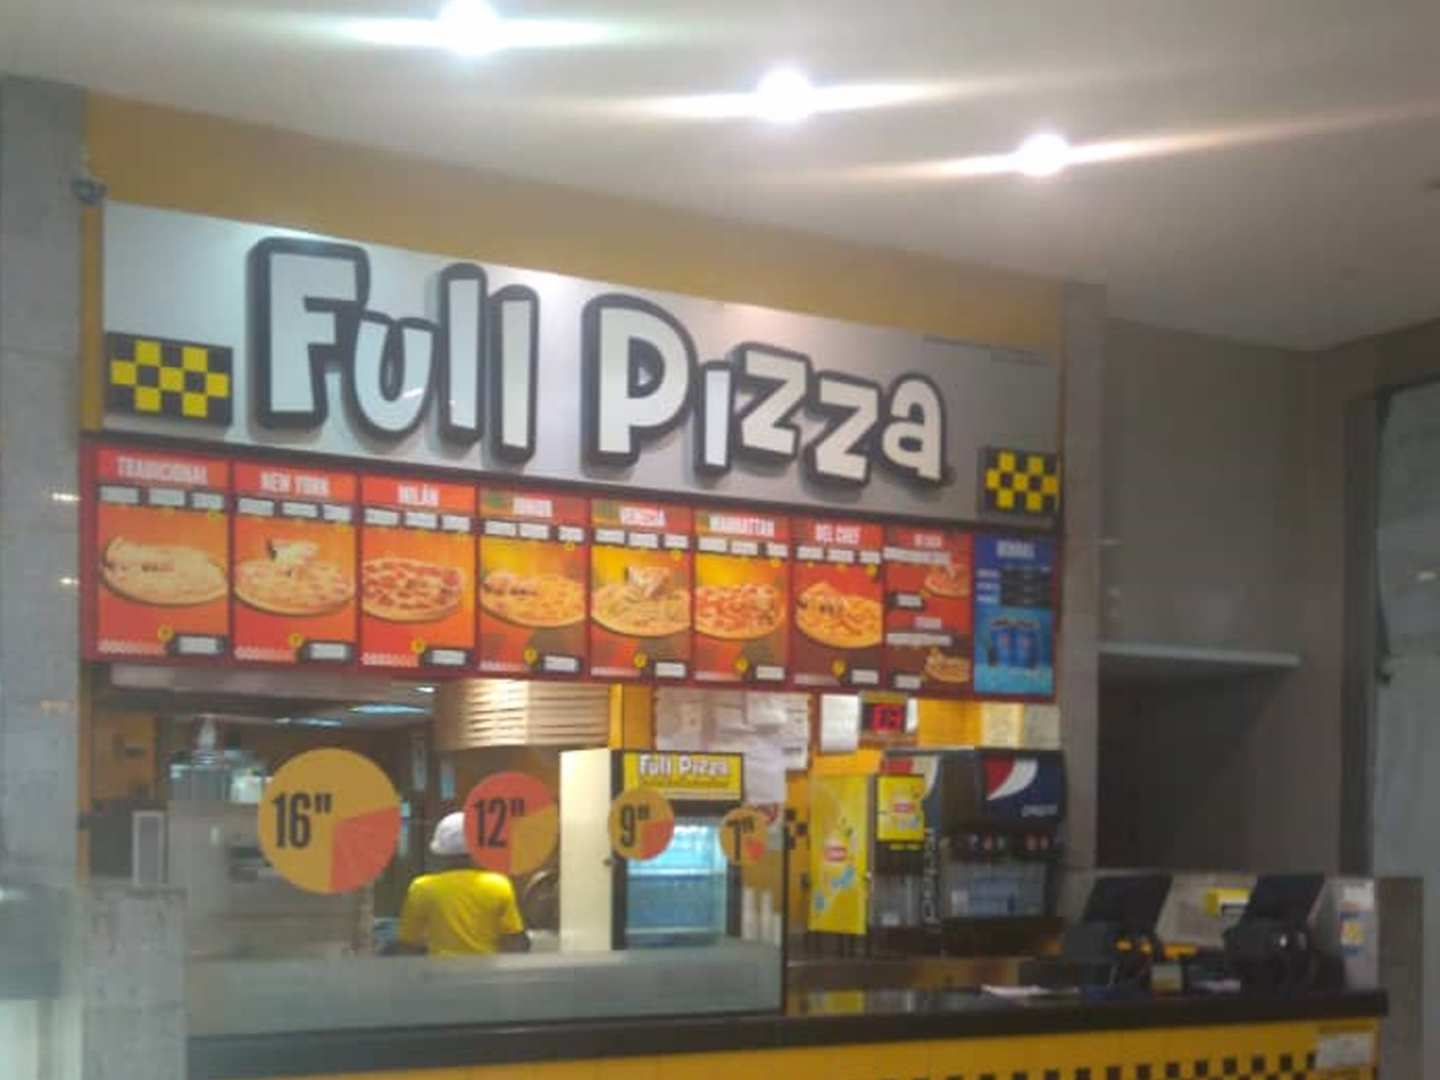 Full Pizza (C.C. Líder)